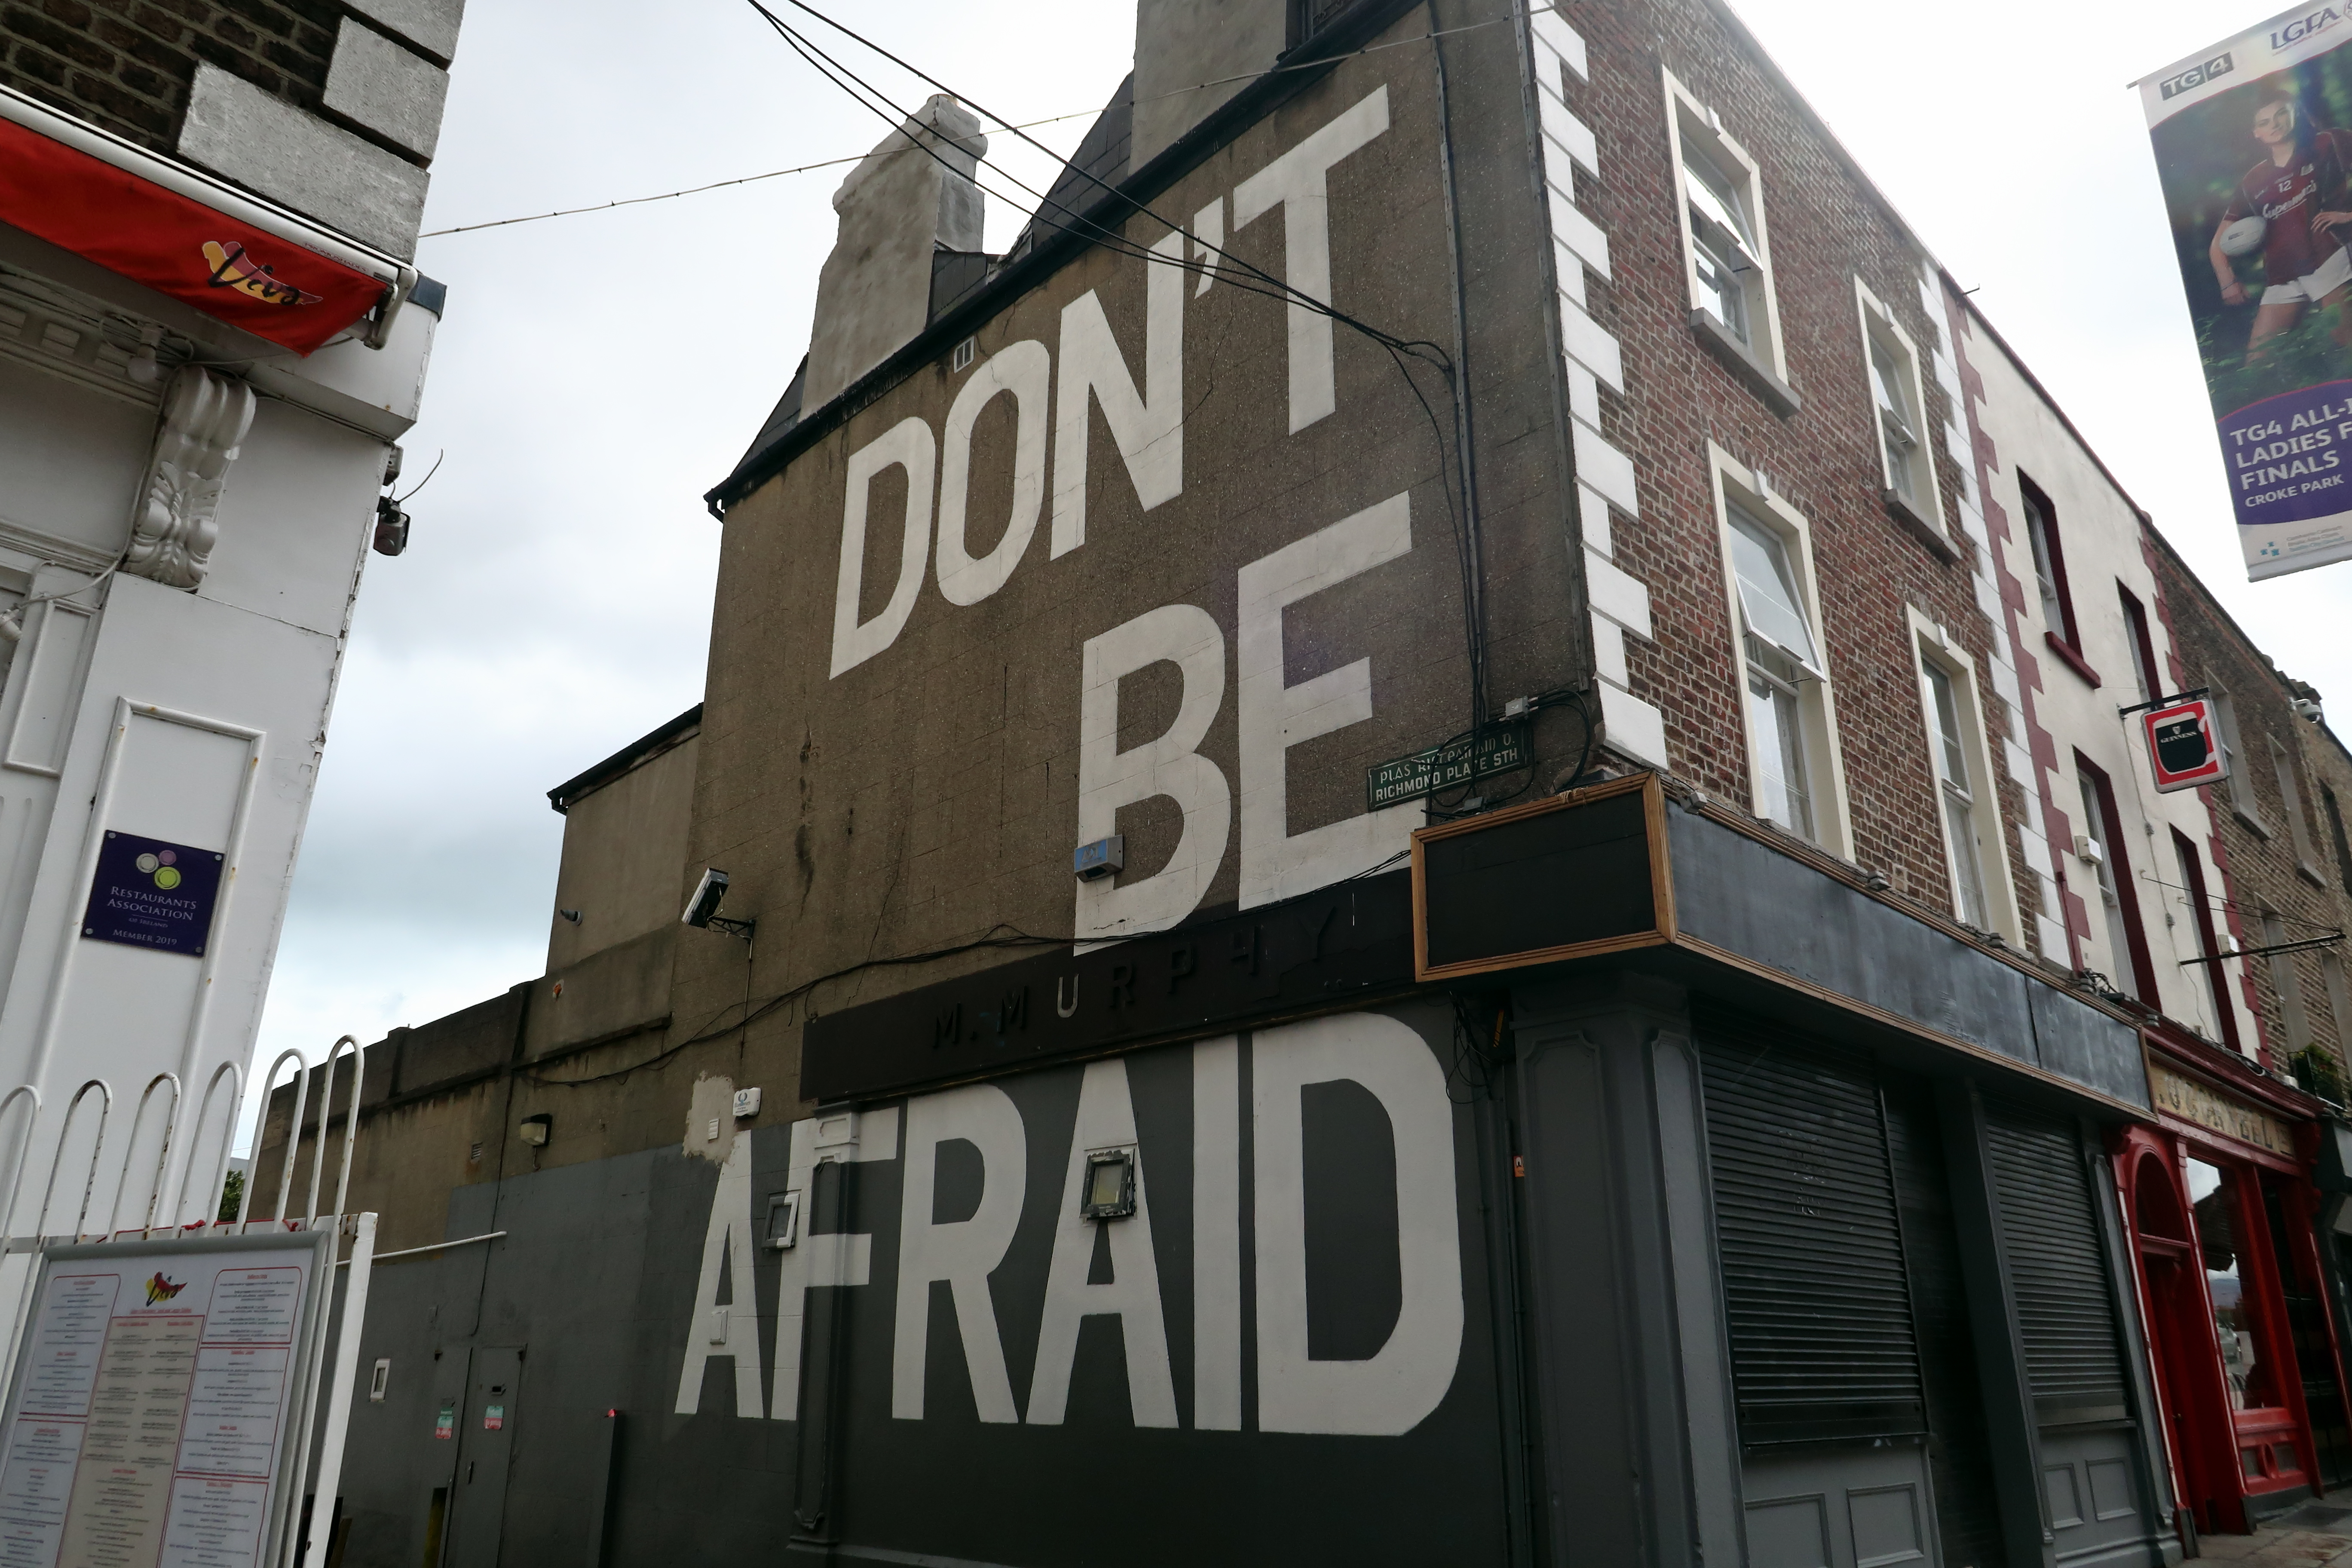 43 Dublin Street Art - Don't be Afraid